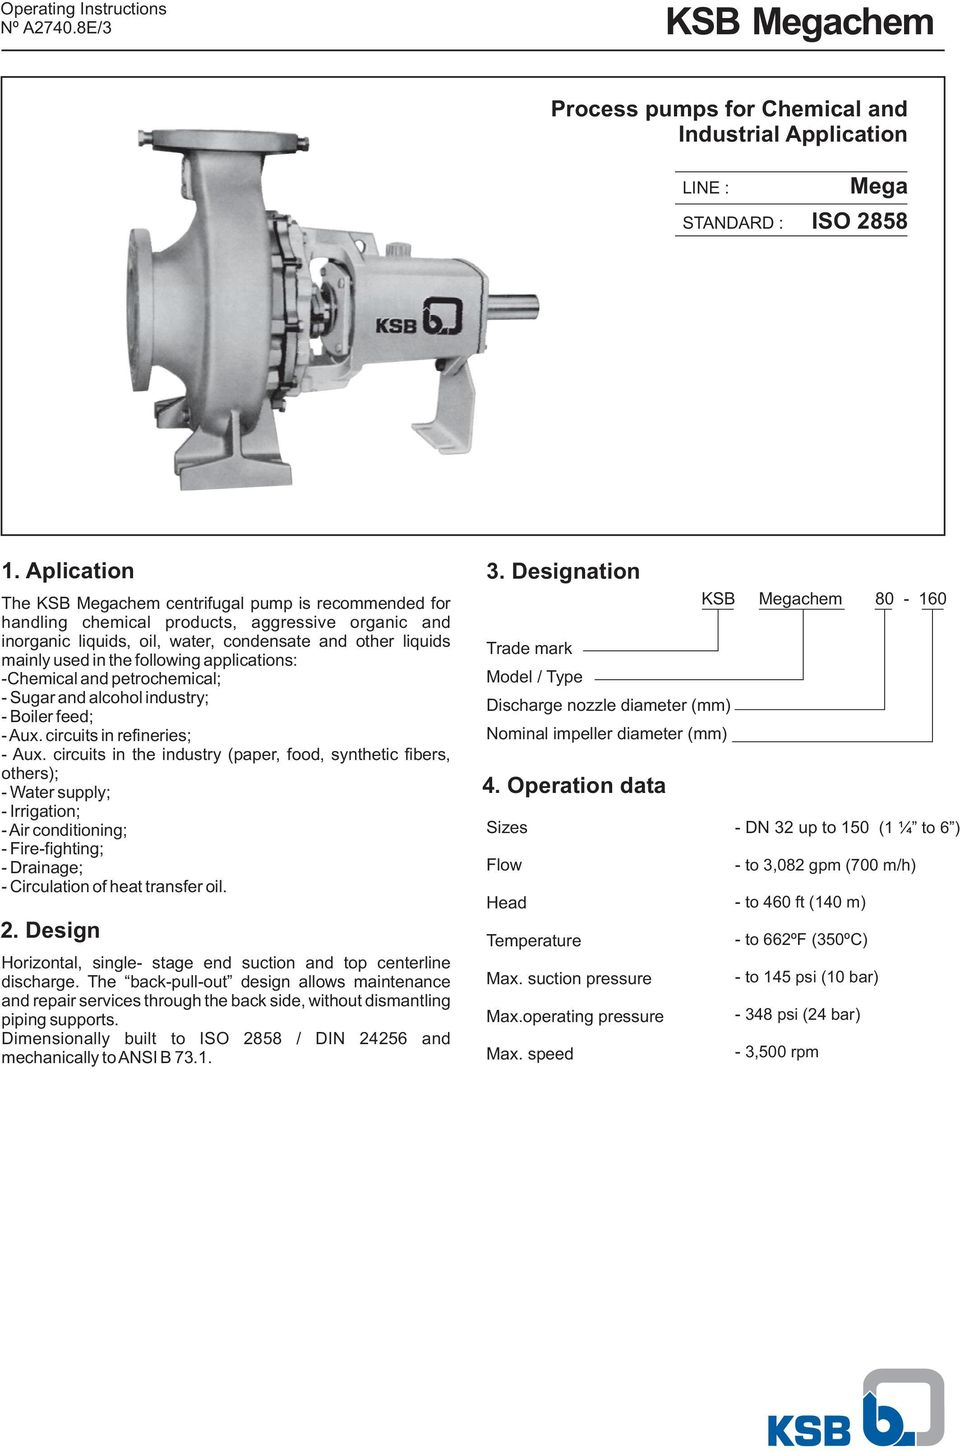 KSB Megachem  Process pumps for Chemical and Industrial Application